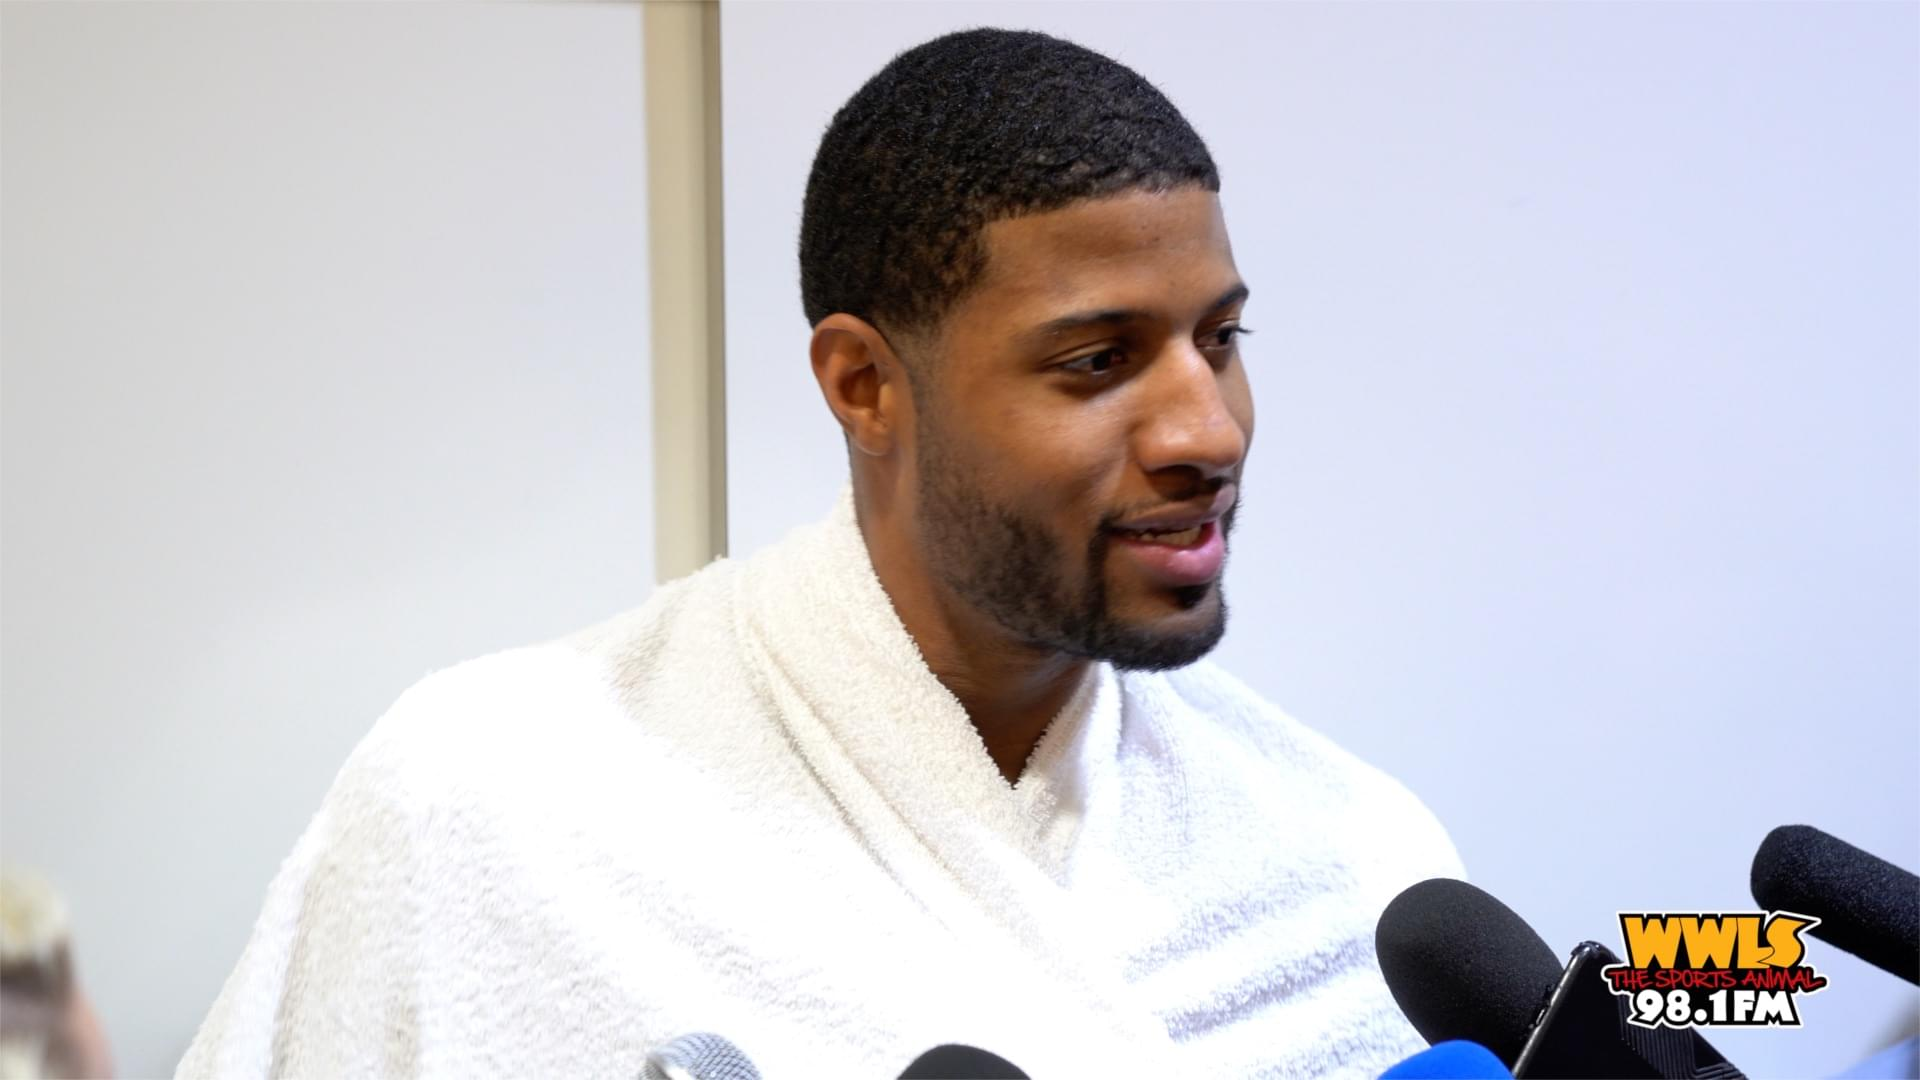 THUMNAIL_20190211-PAUL GEORGE FULL